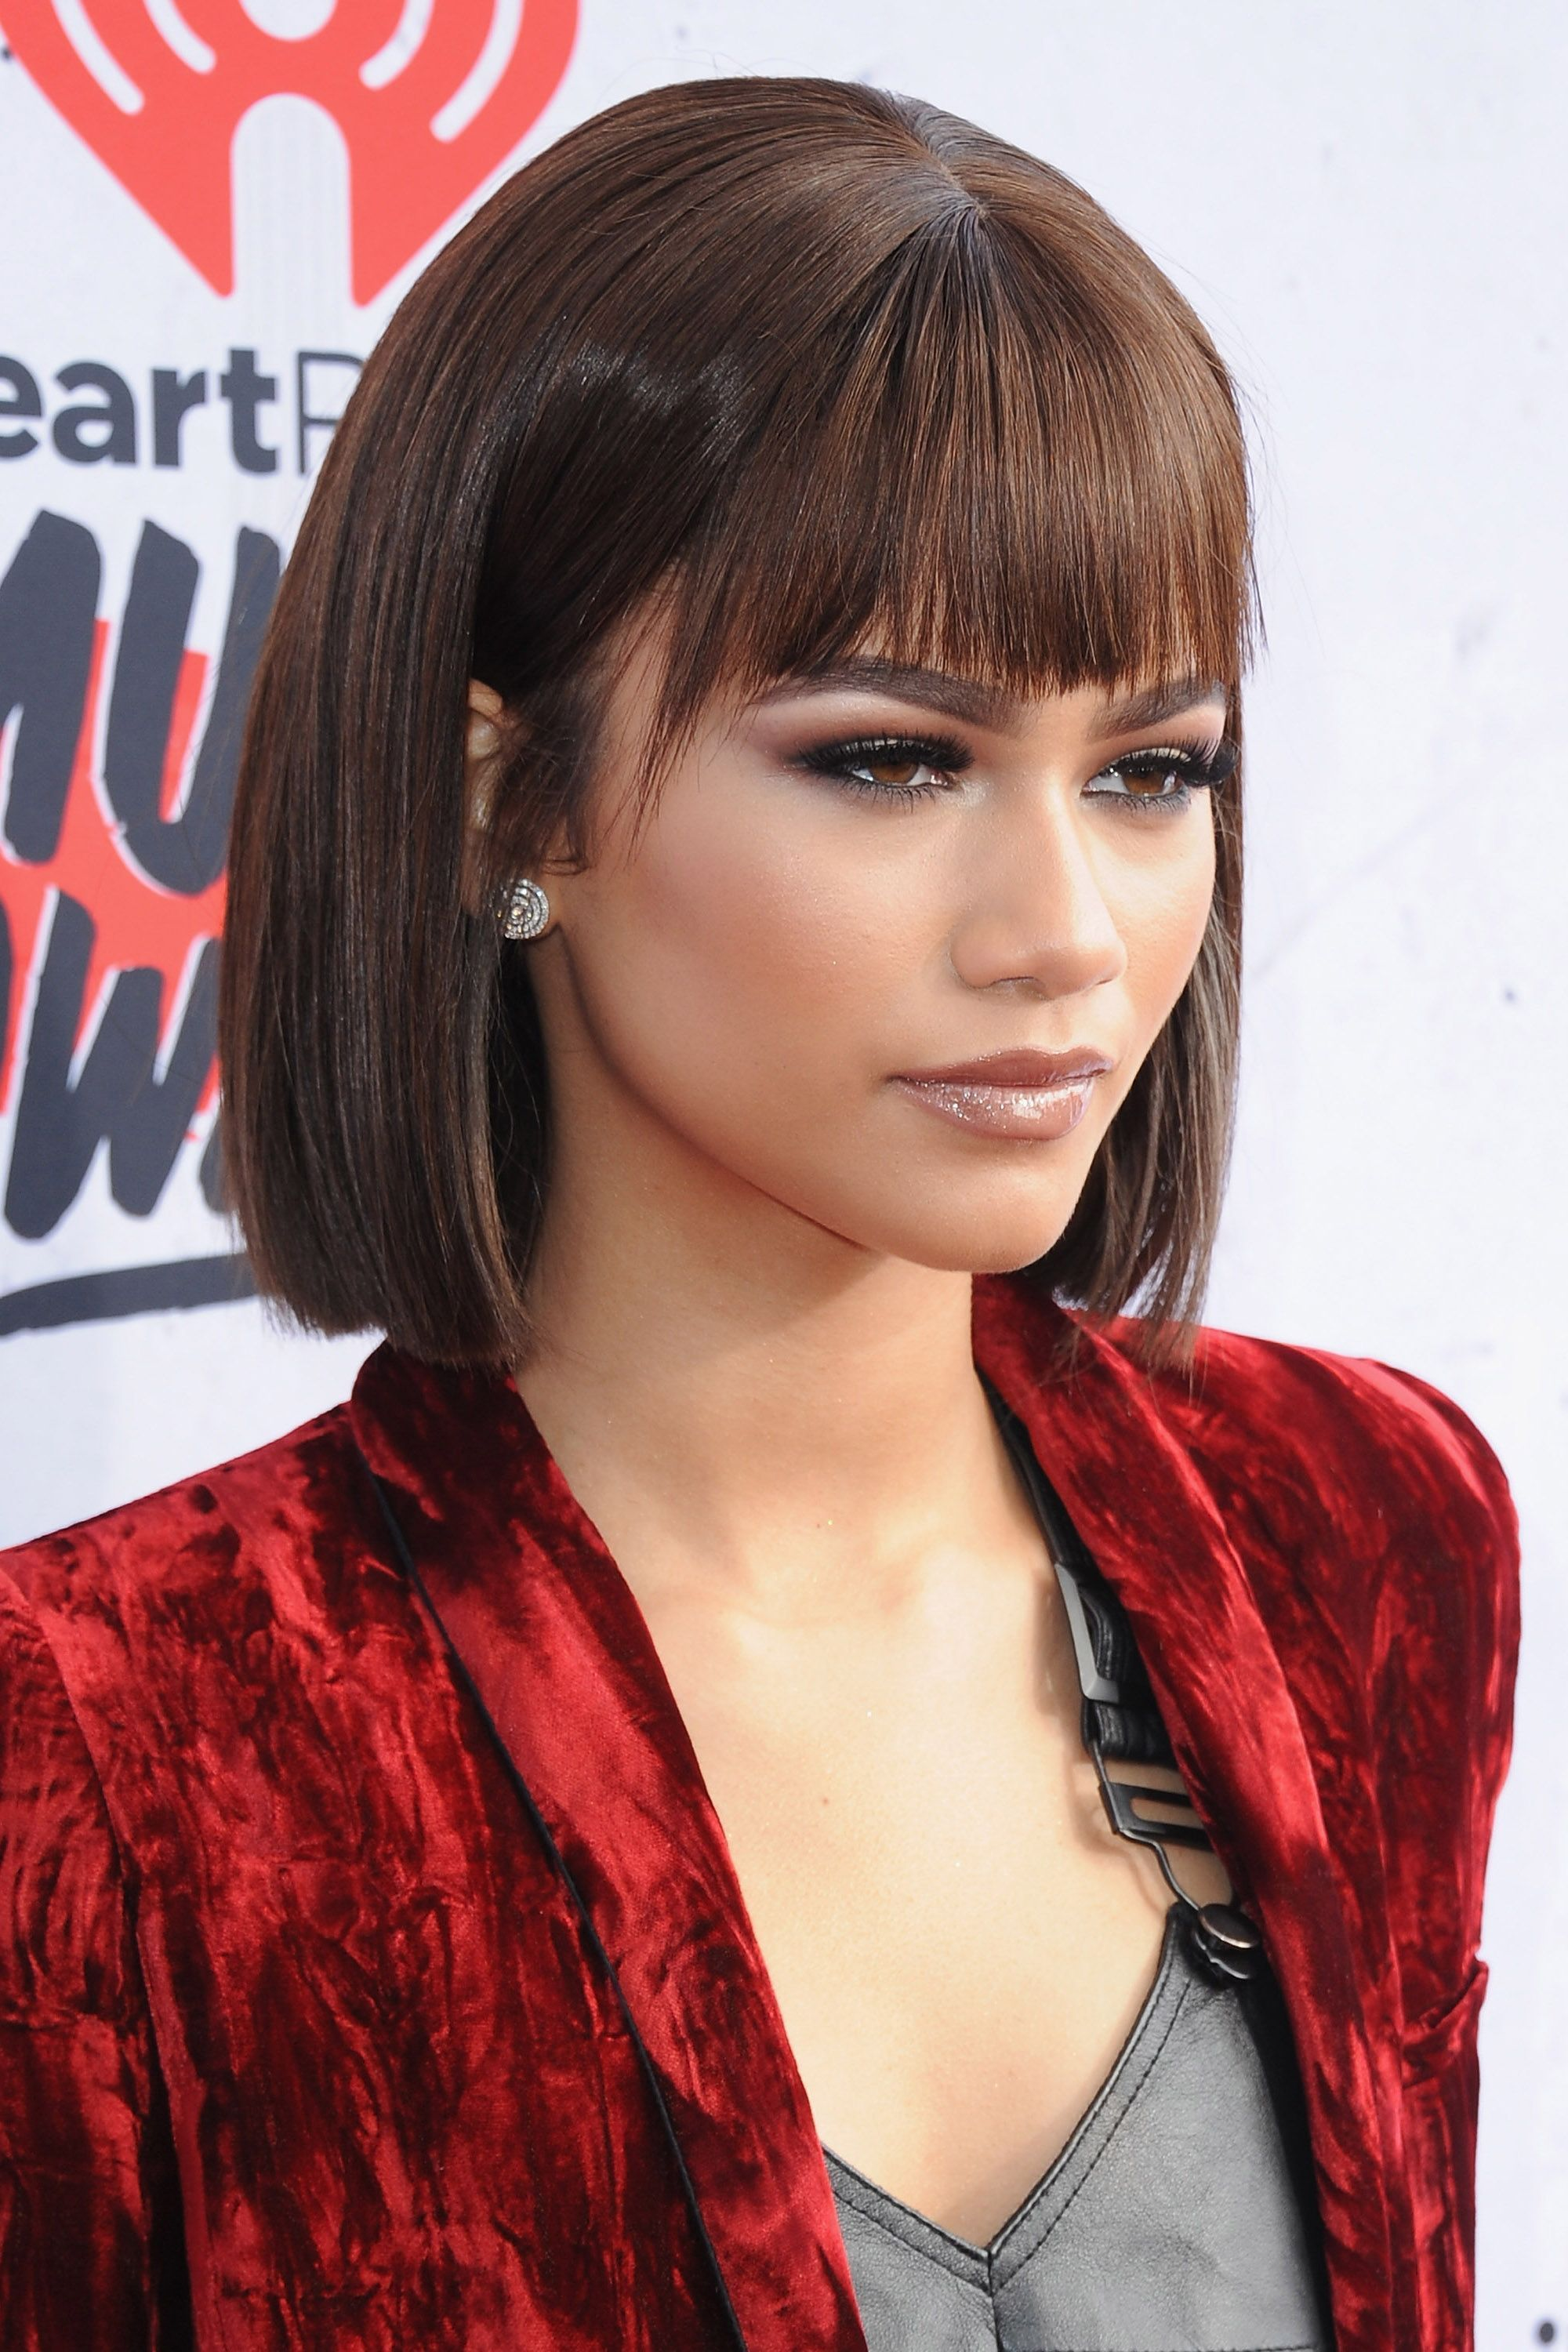 20 Blunt Bangs Hairstyles Inspired By Celebs With The Best Bangs I Am Co Zendaya Hair Hairstyles With Bangs Bobs Haircuts